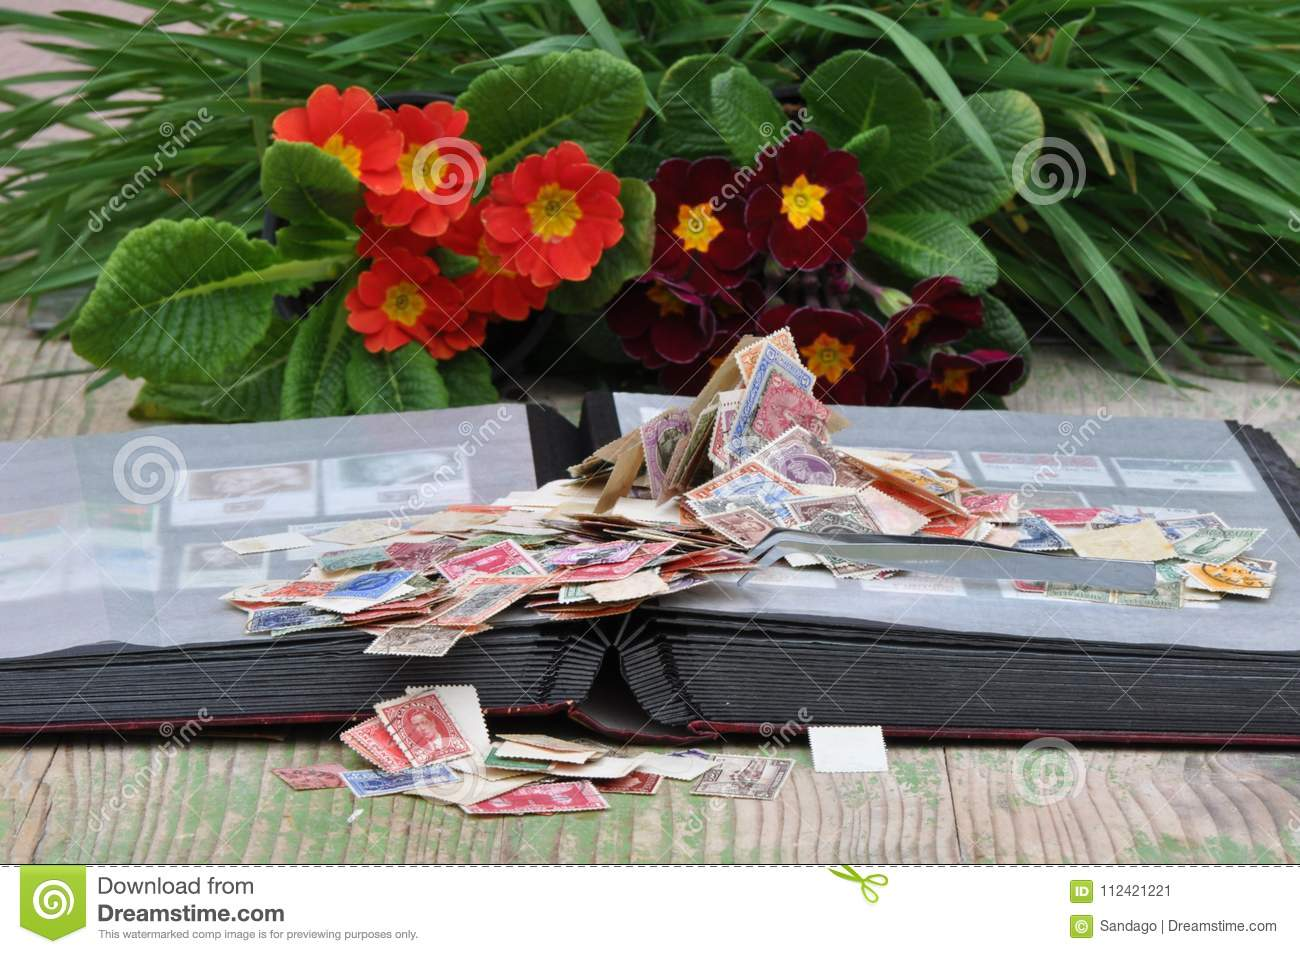 Stamp album with pile of stamps